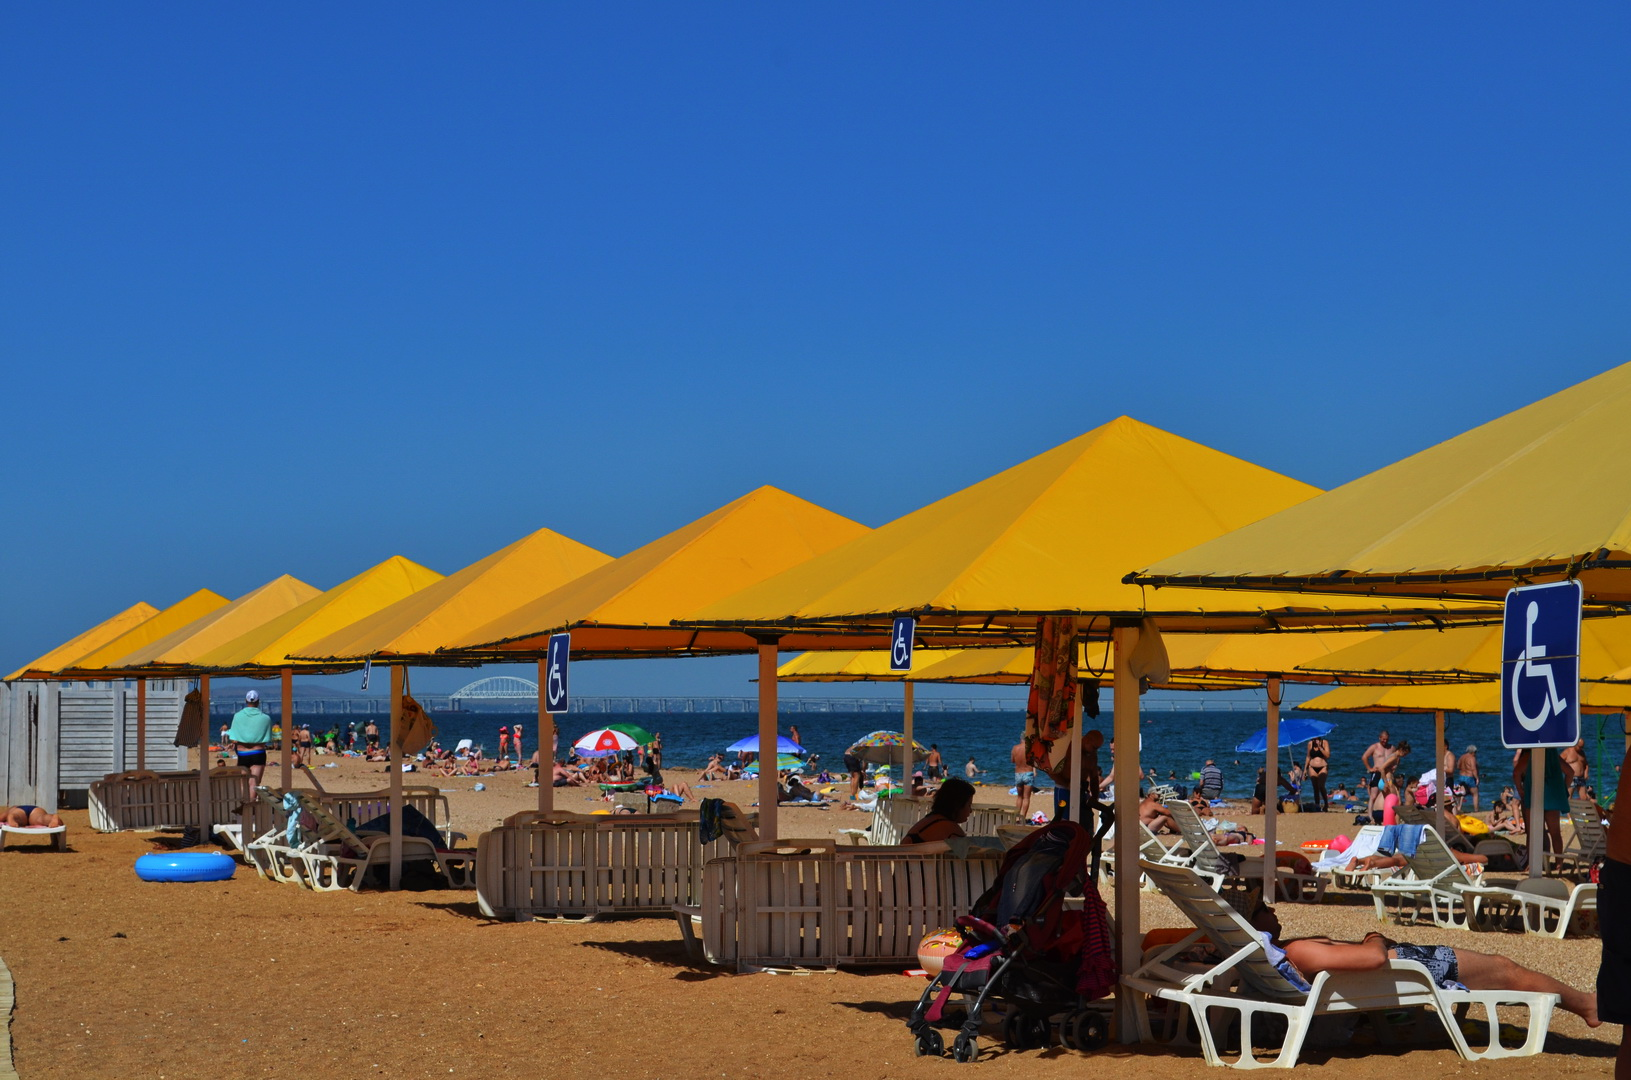 kerch beach 28 06 2020 4